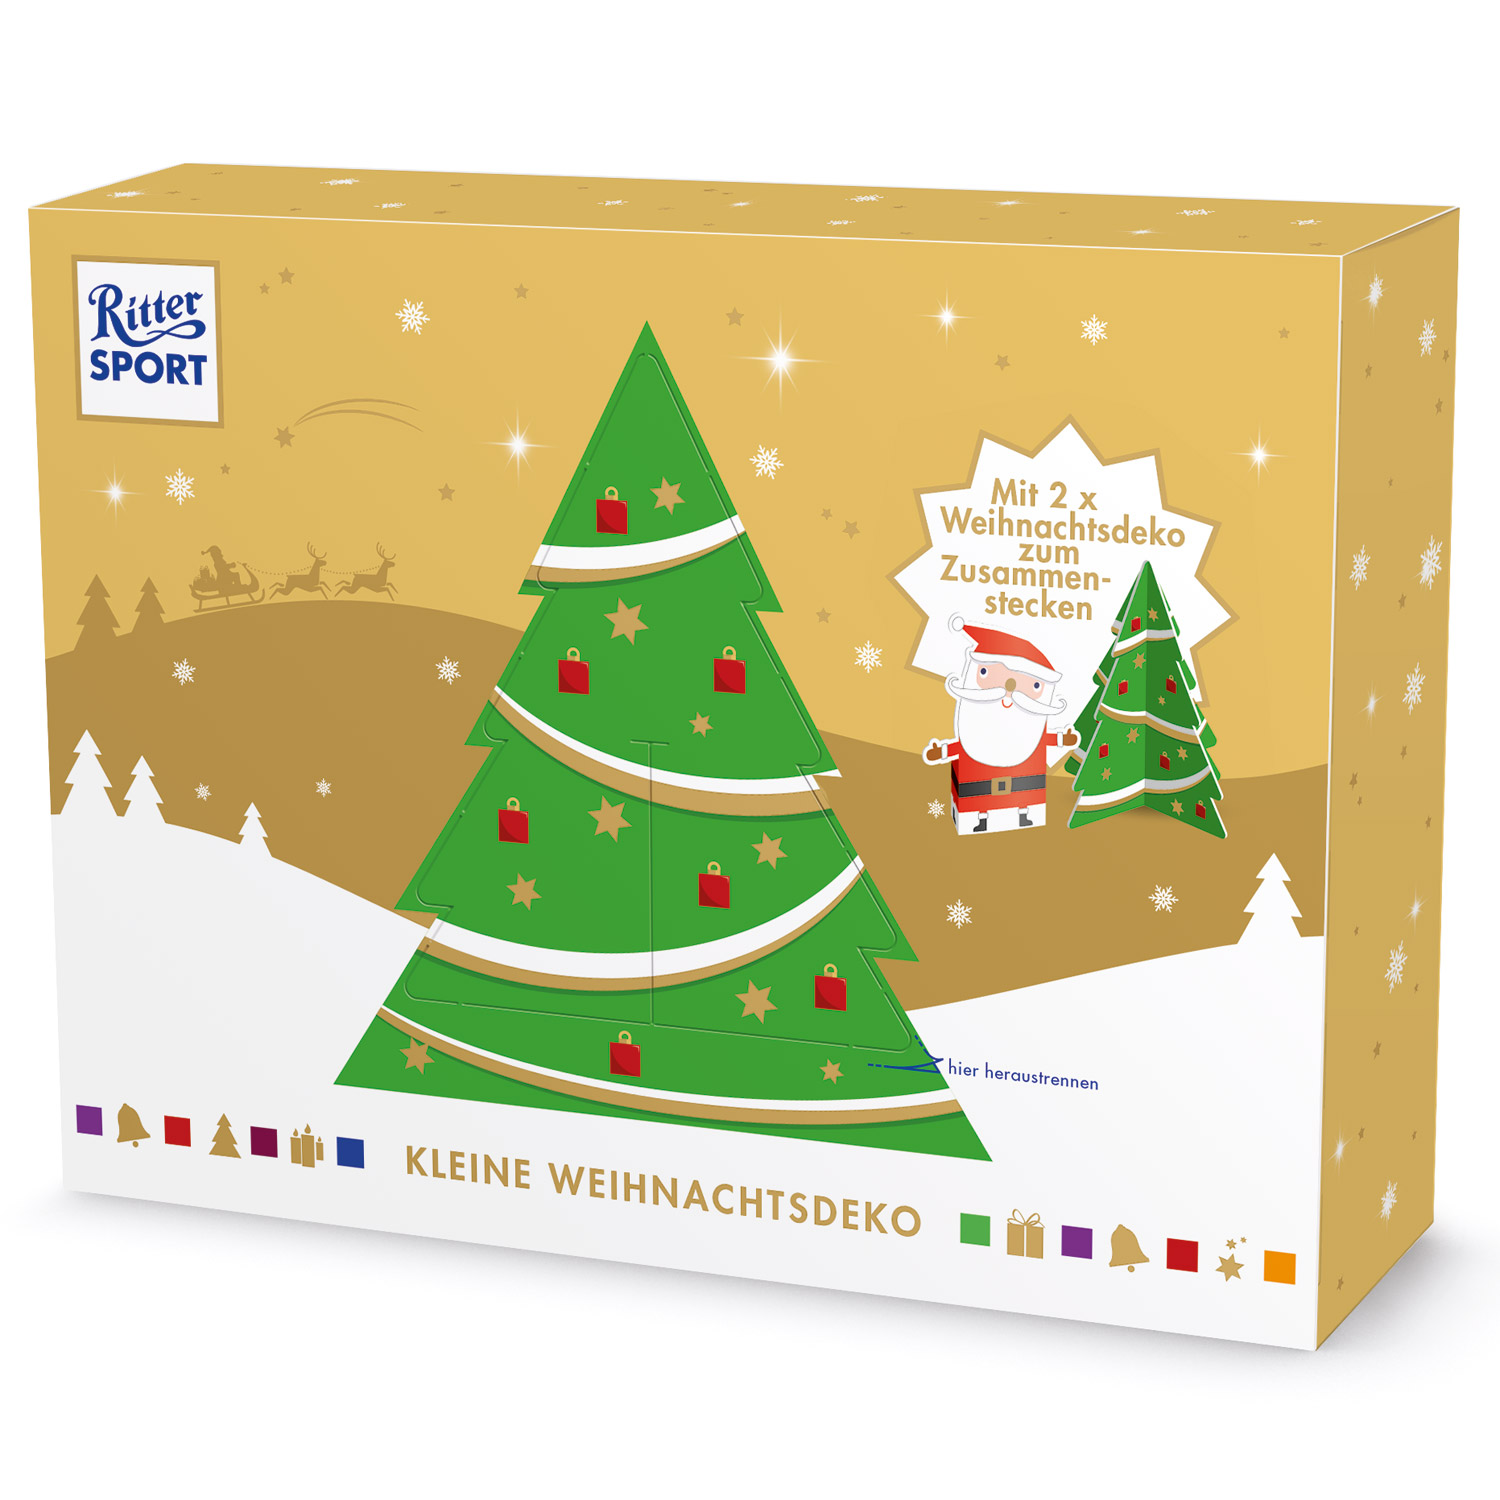 ritter sport kleine weihnachtsdeko online kaufen im. Black Bedroom Furniture Sets. Home Design Ideas